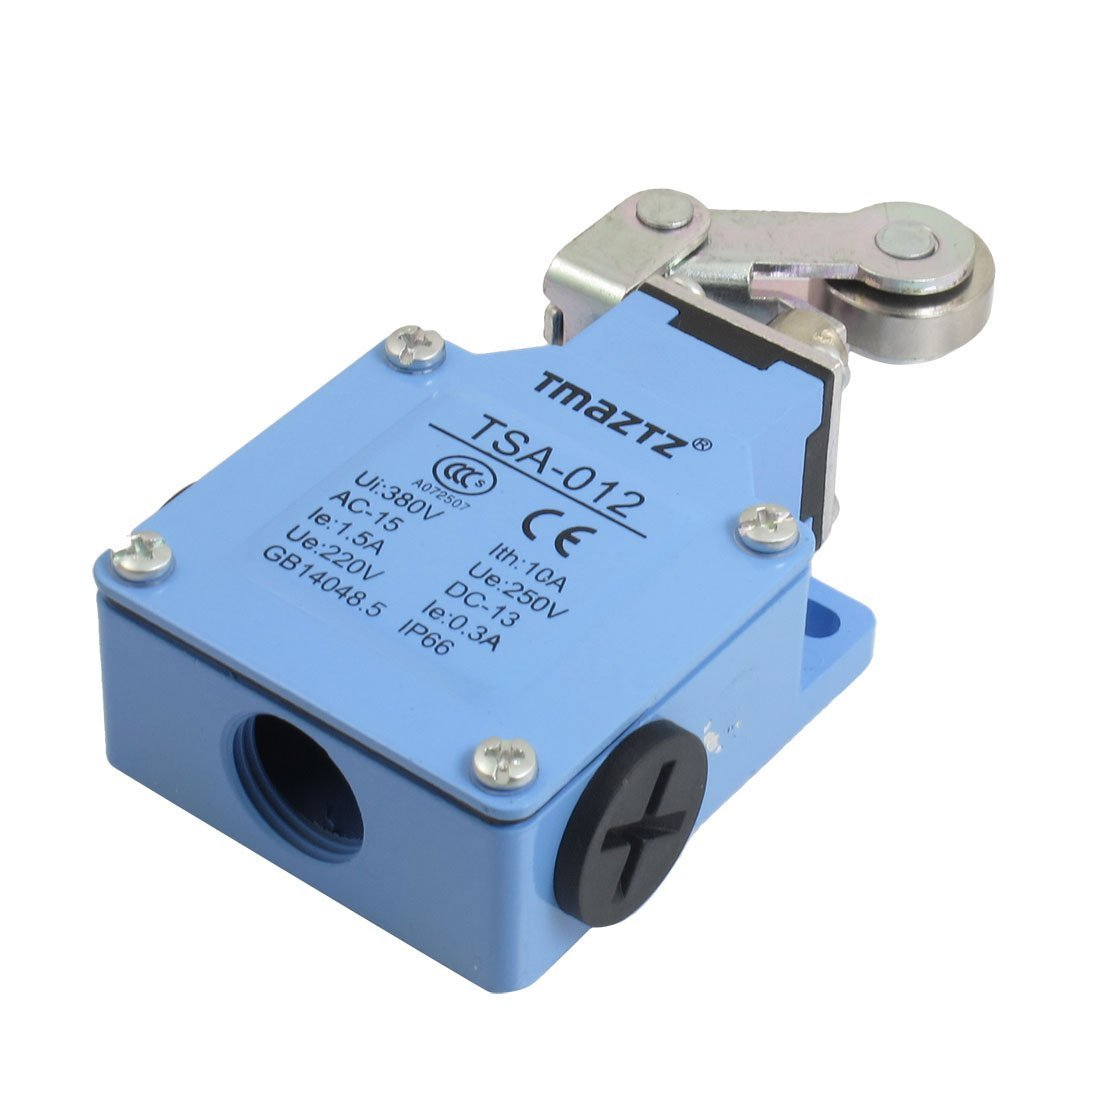 Baomain Limit switch TSA-012 Rolling Cam Momentary 1NO 1NC 250VAC 1.5A 220VDC 0.3A